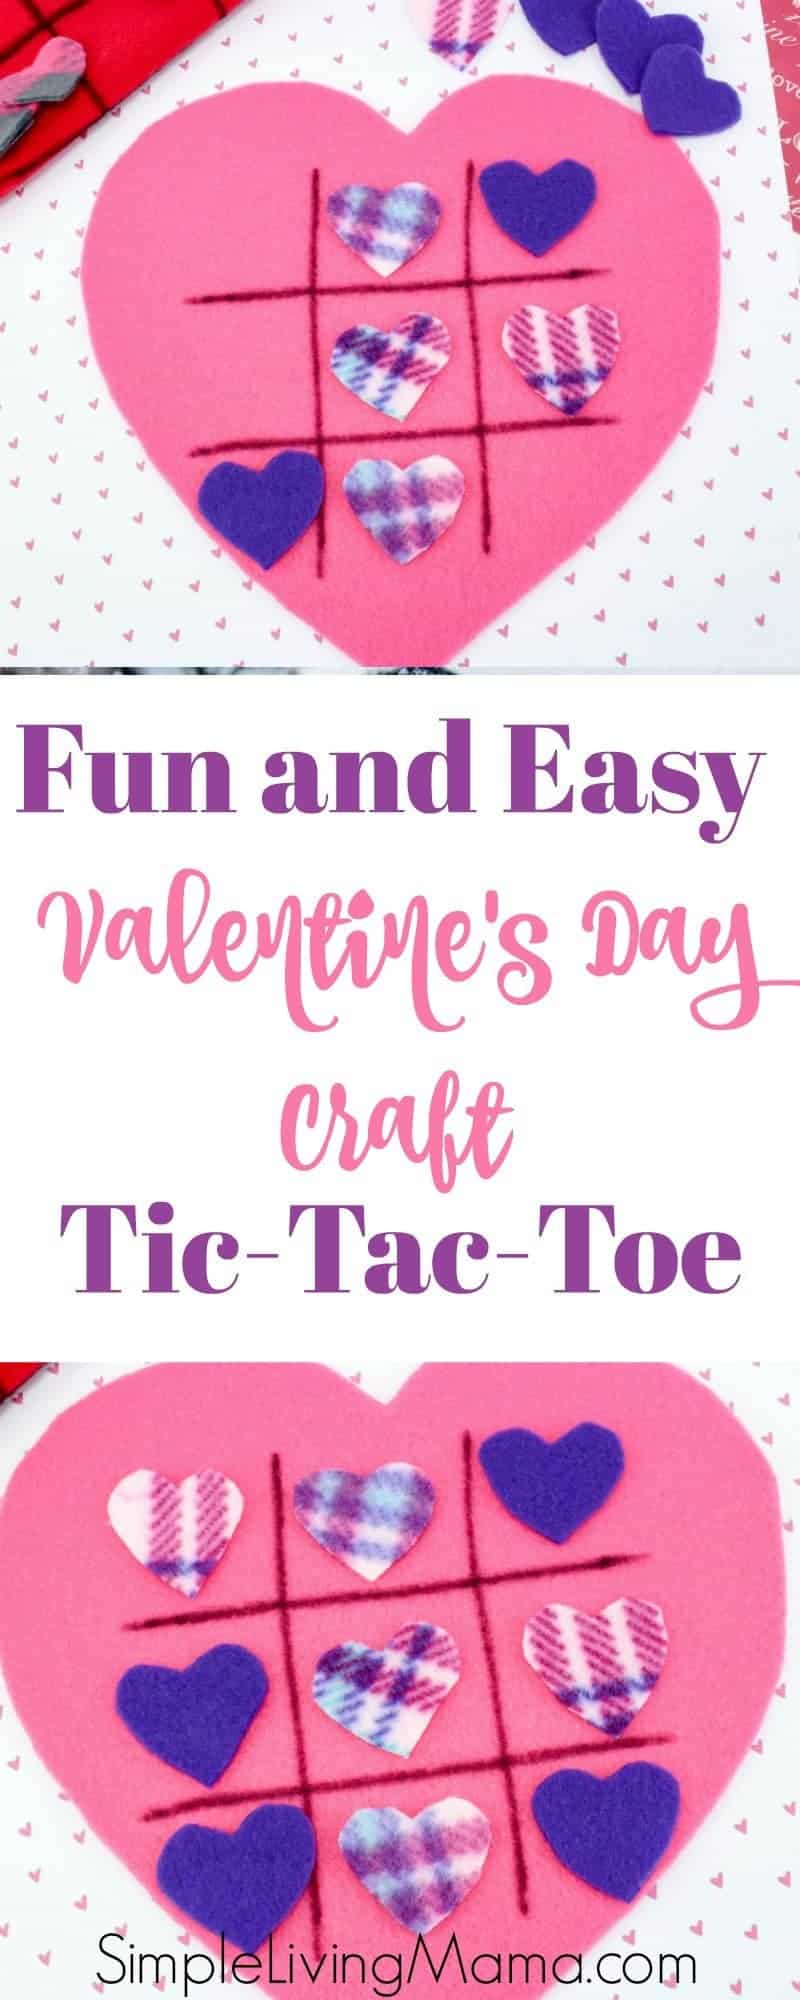 This fun and easy Valentine's Day craft is perfect for kids and adults alike. Make a felt heart and play tic-tac-toe!